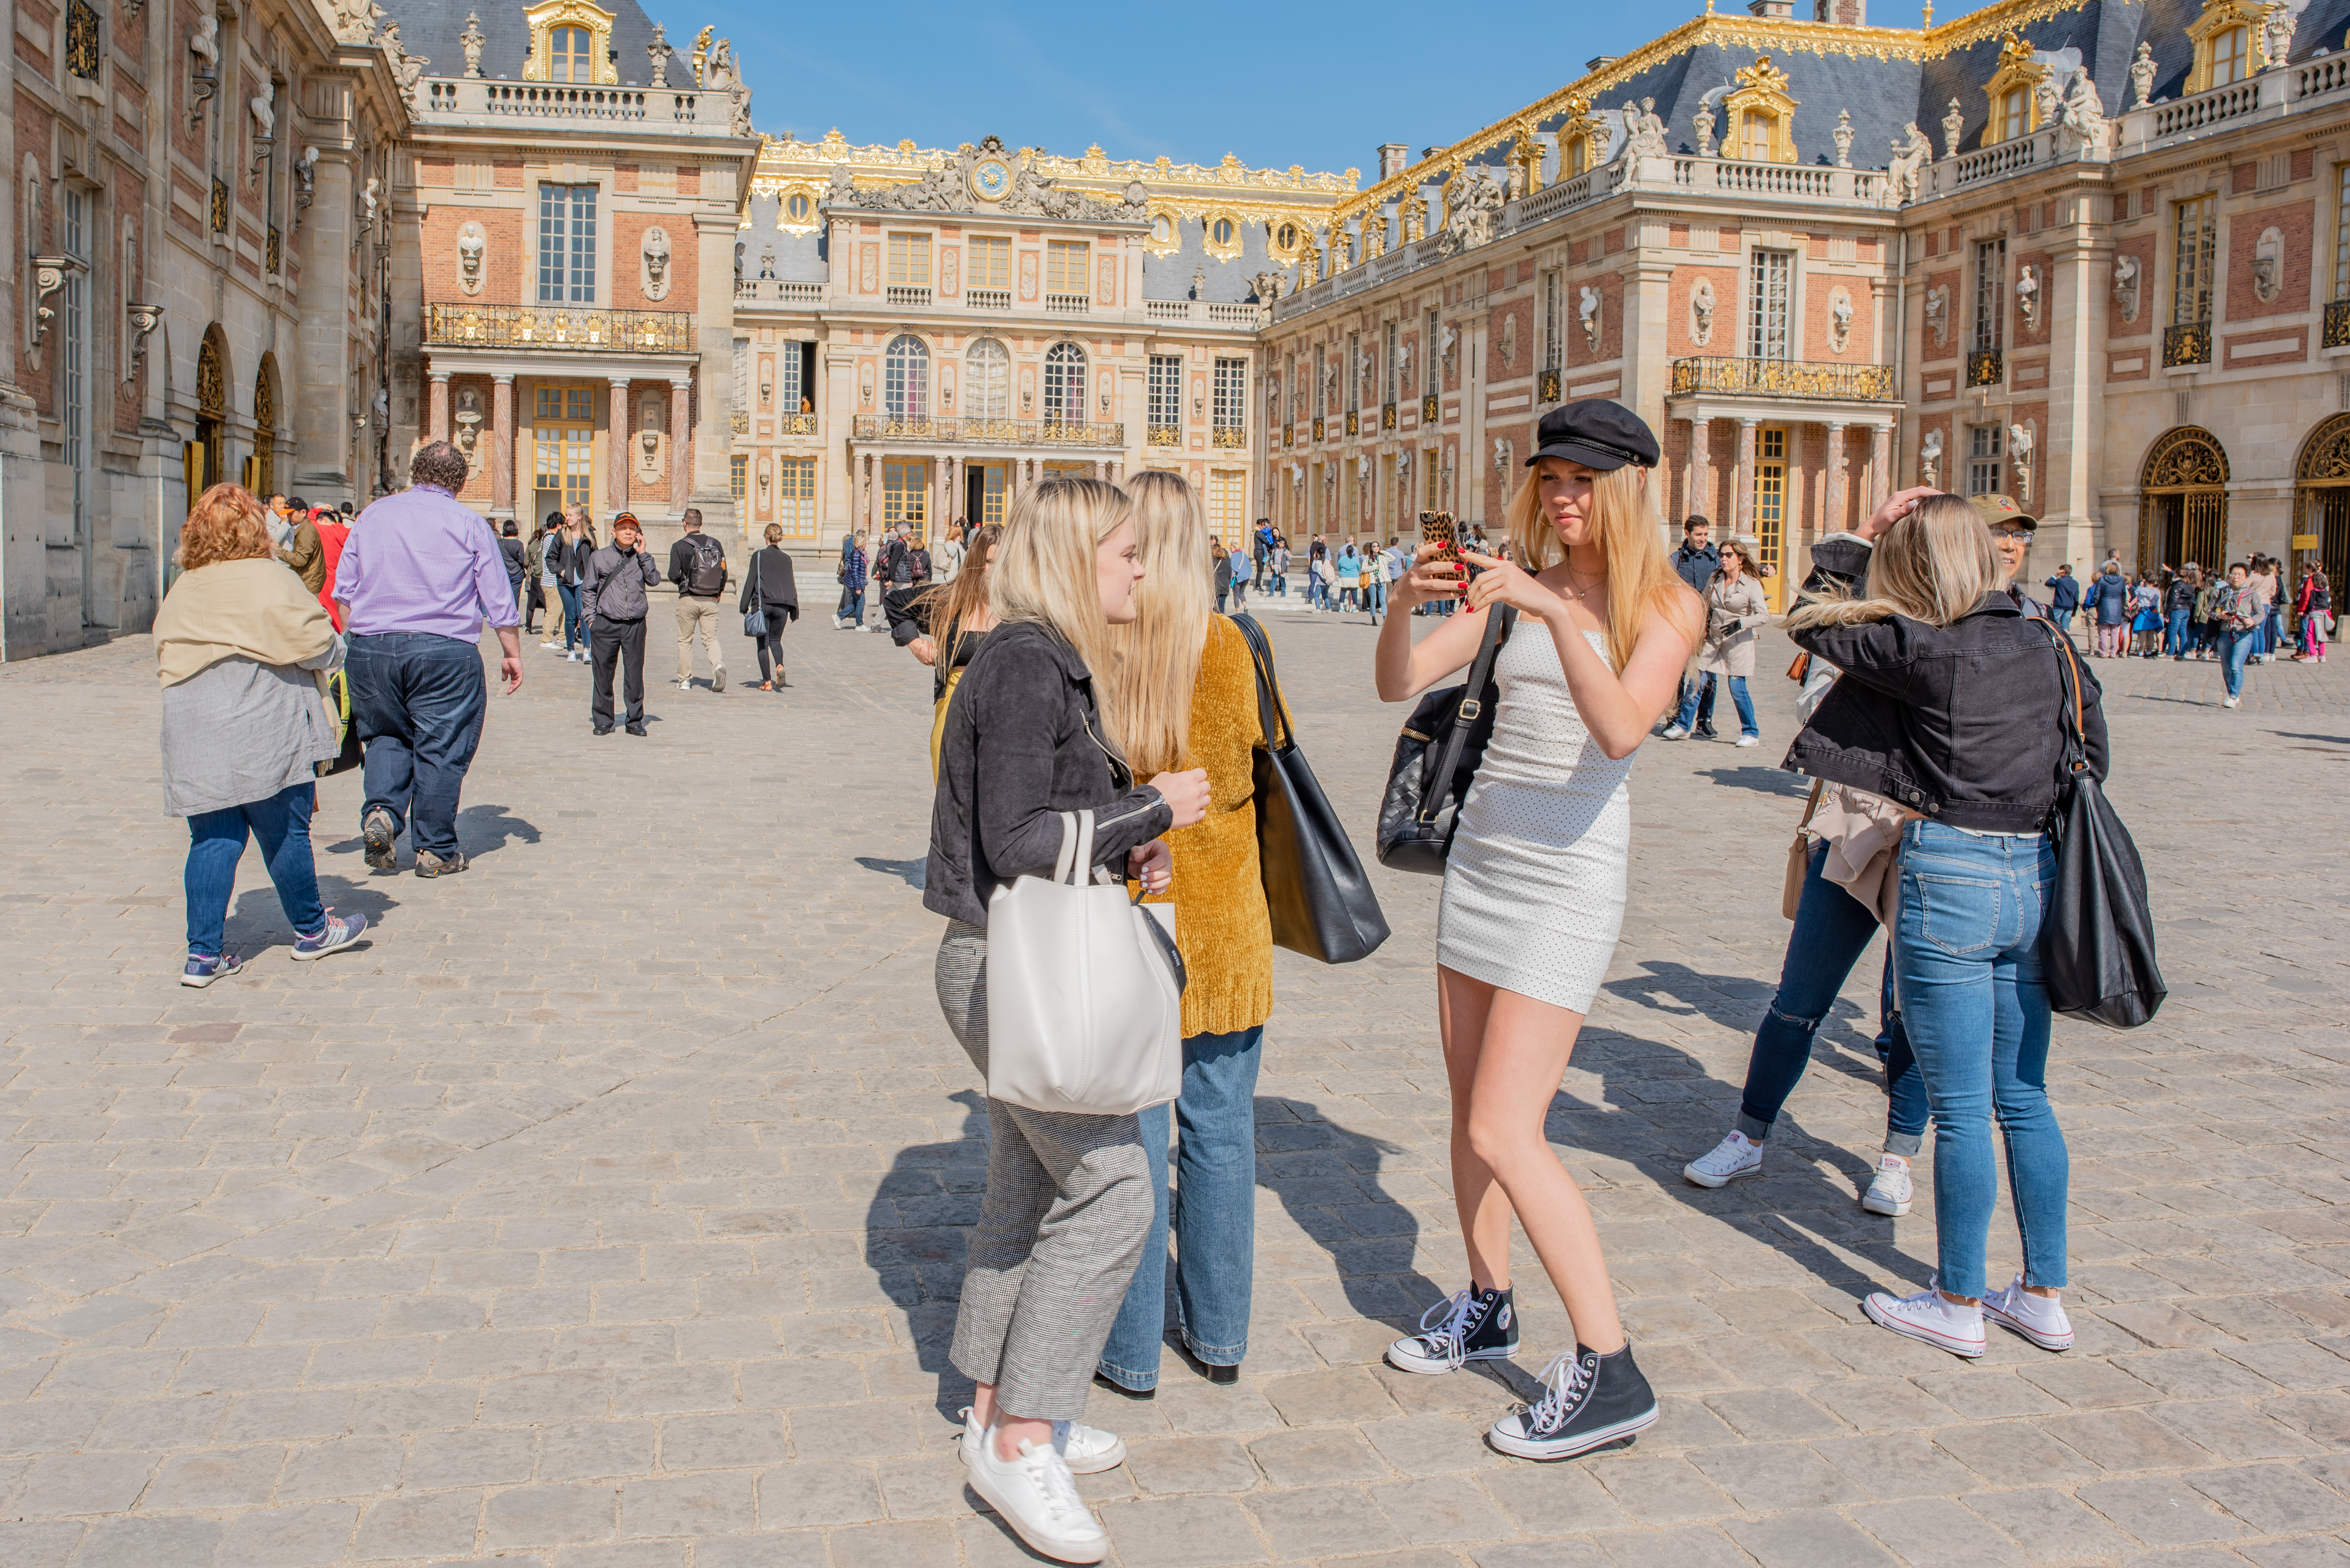 Young women take selfies outside the Palace at Versailles.